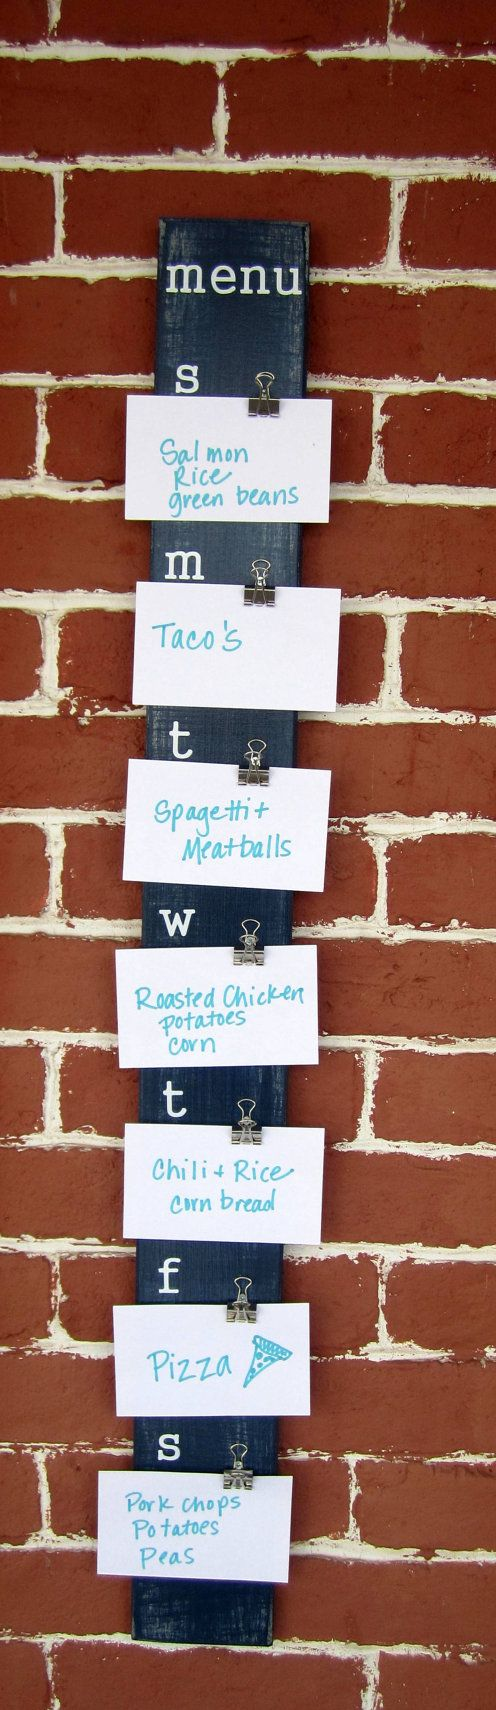 "Could totally make this. You could write the recipes on the back and just keep them stored in a small box.Weekly Planning Menu Board - 3.75"" x 36.5"" - Using index cards rather than chalkboard paint. No need to wipe down if you need to rearrange a meal! Genius."